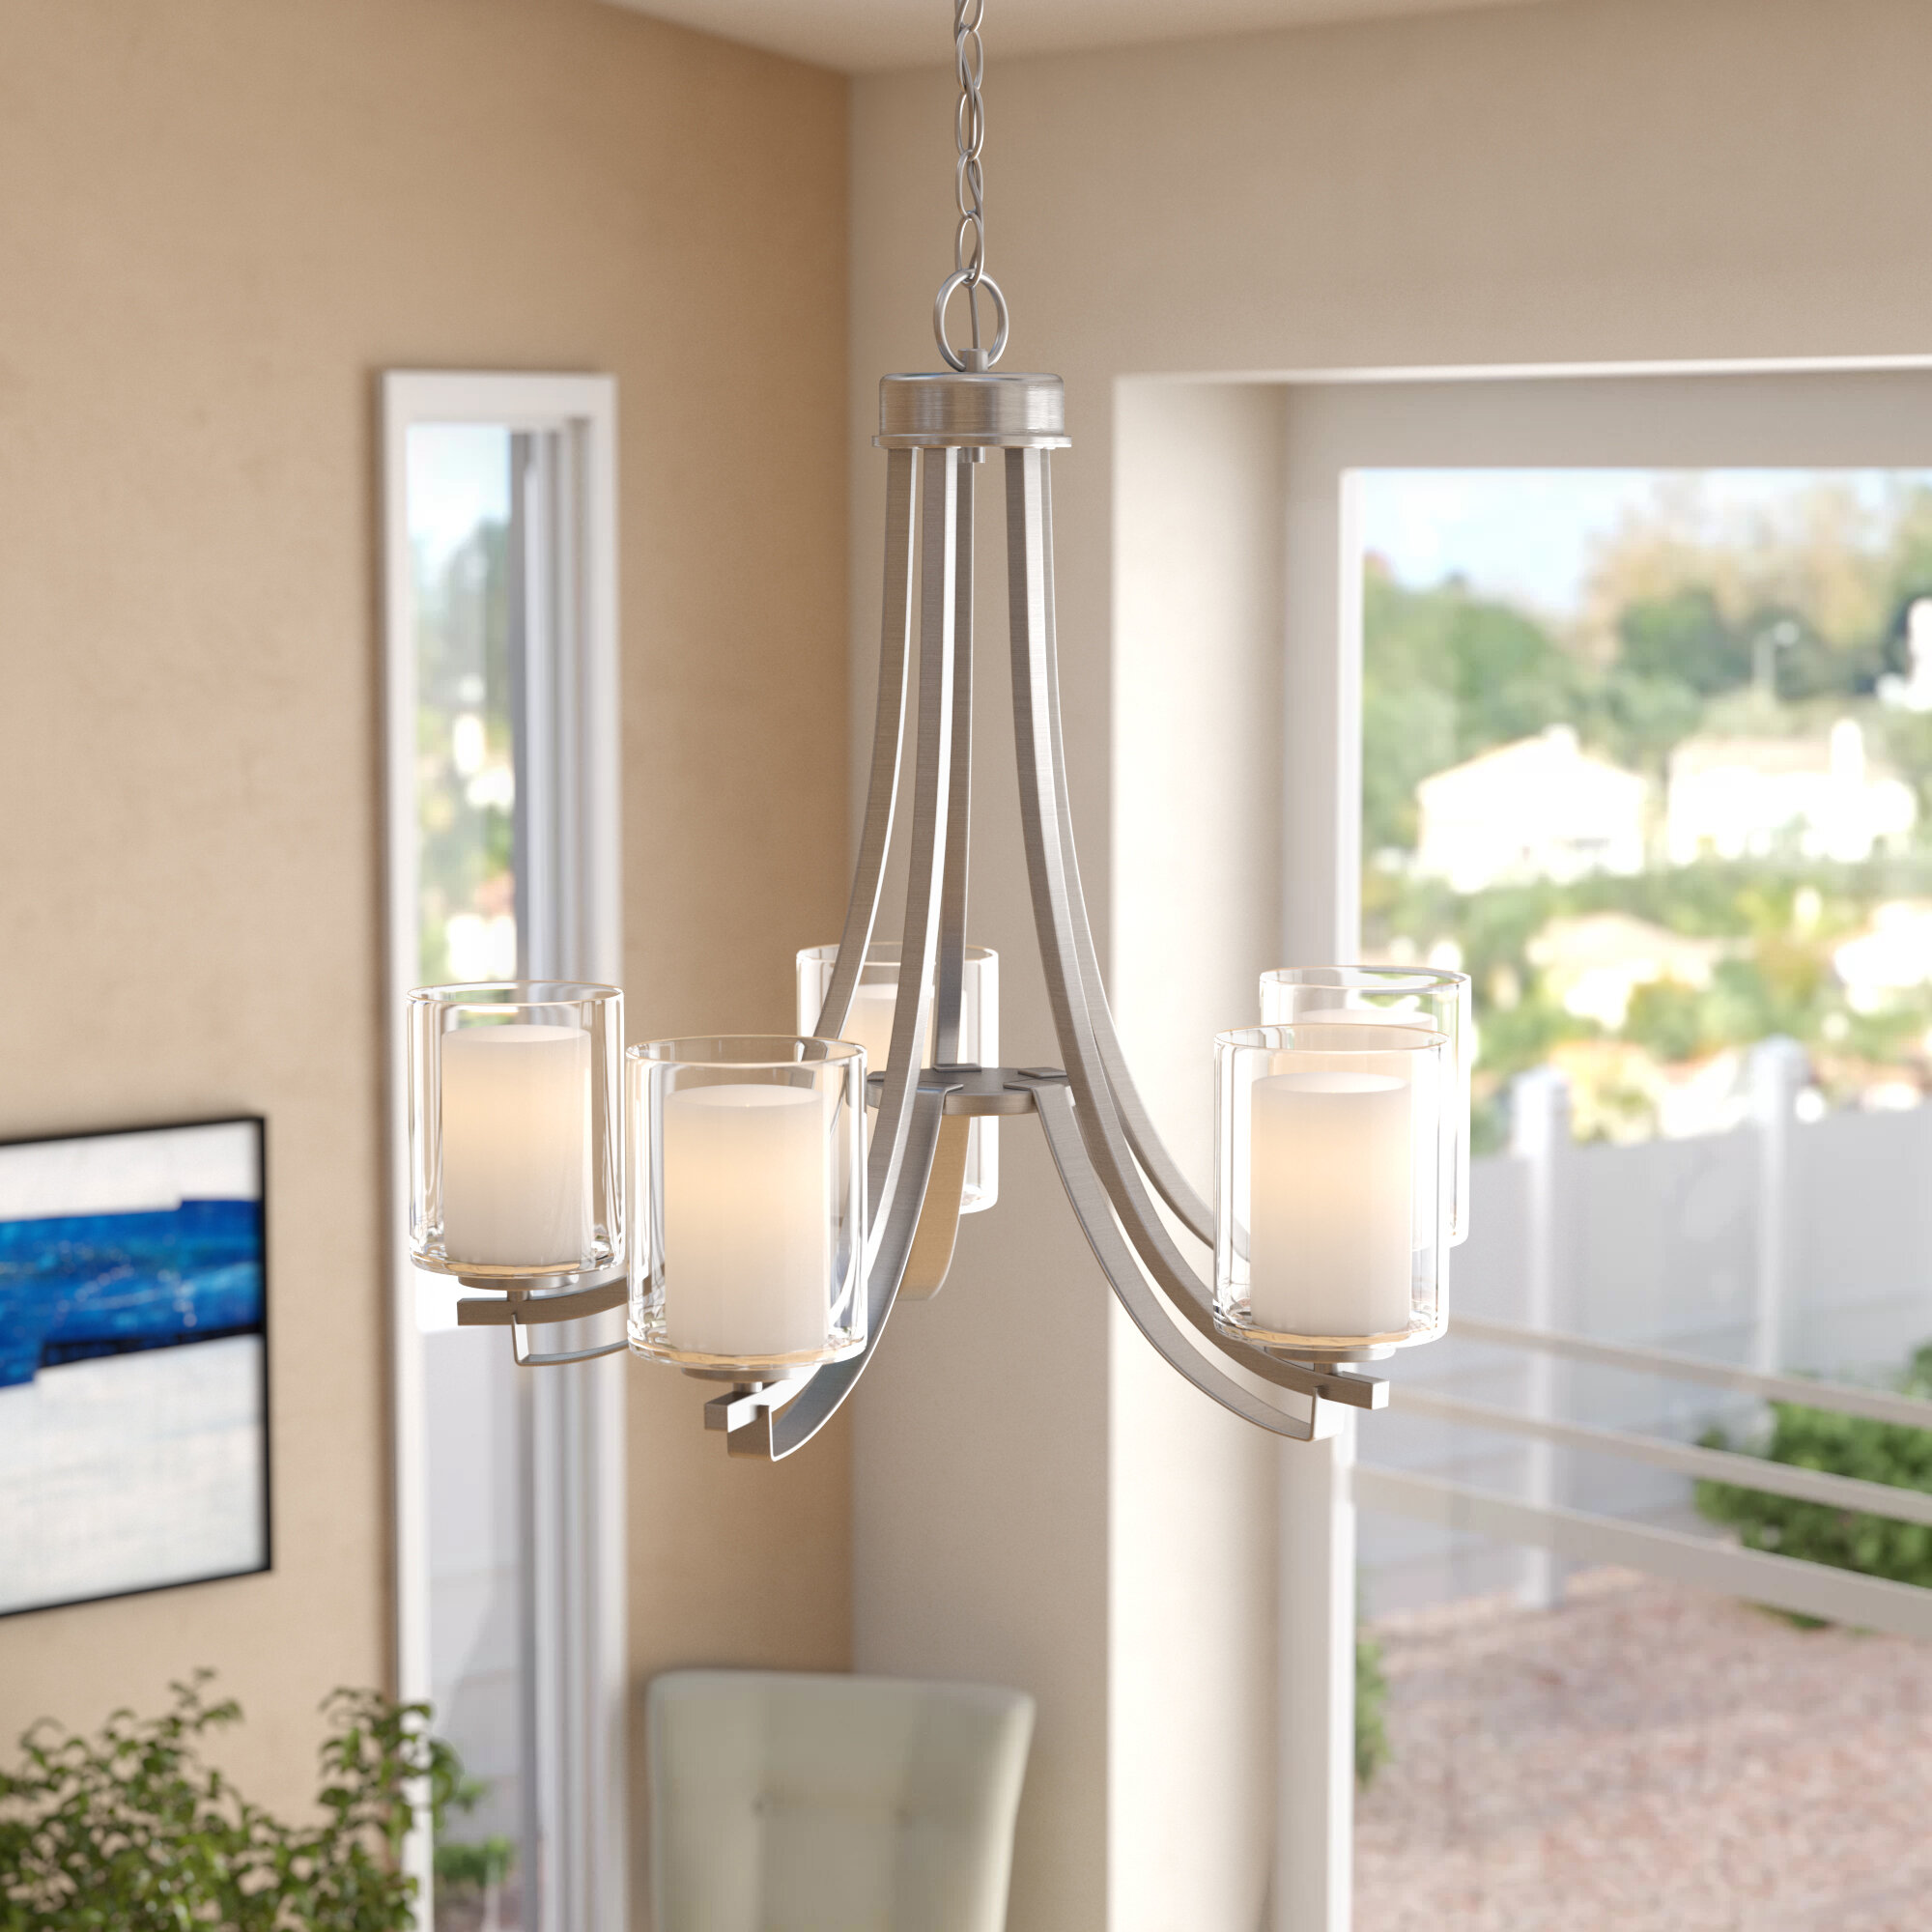 Demby 5 Light Shaded Chandelier